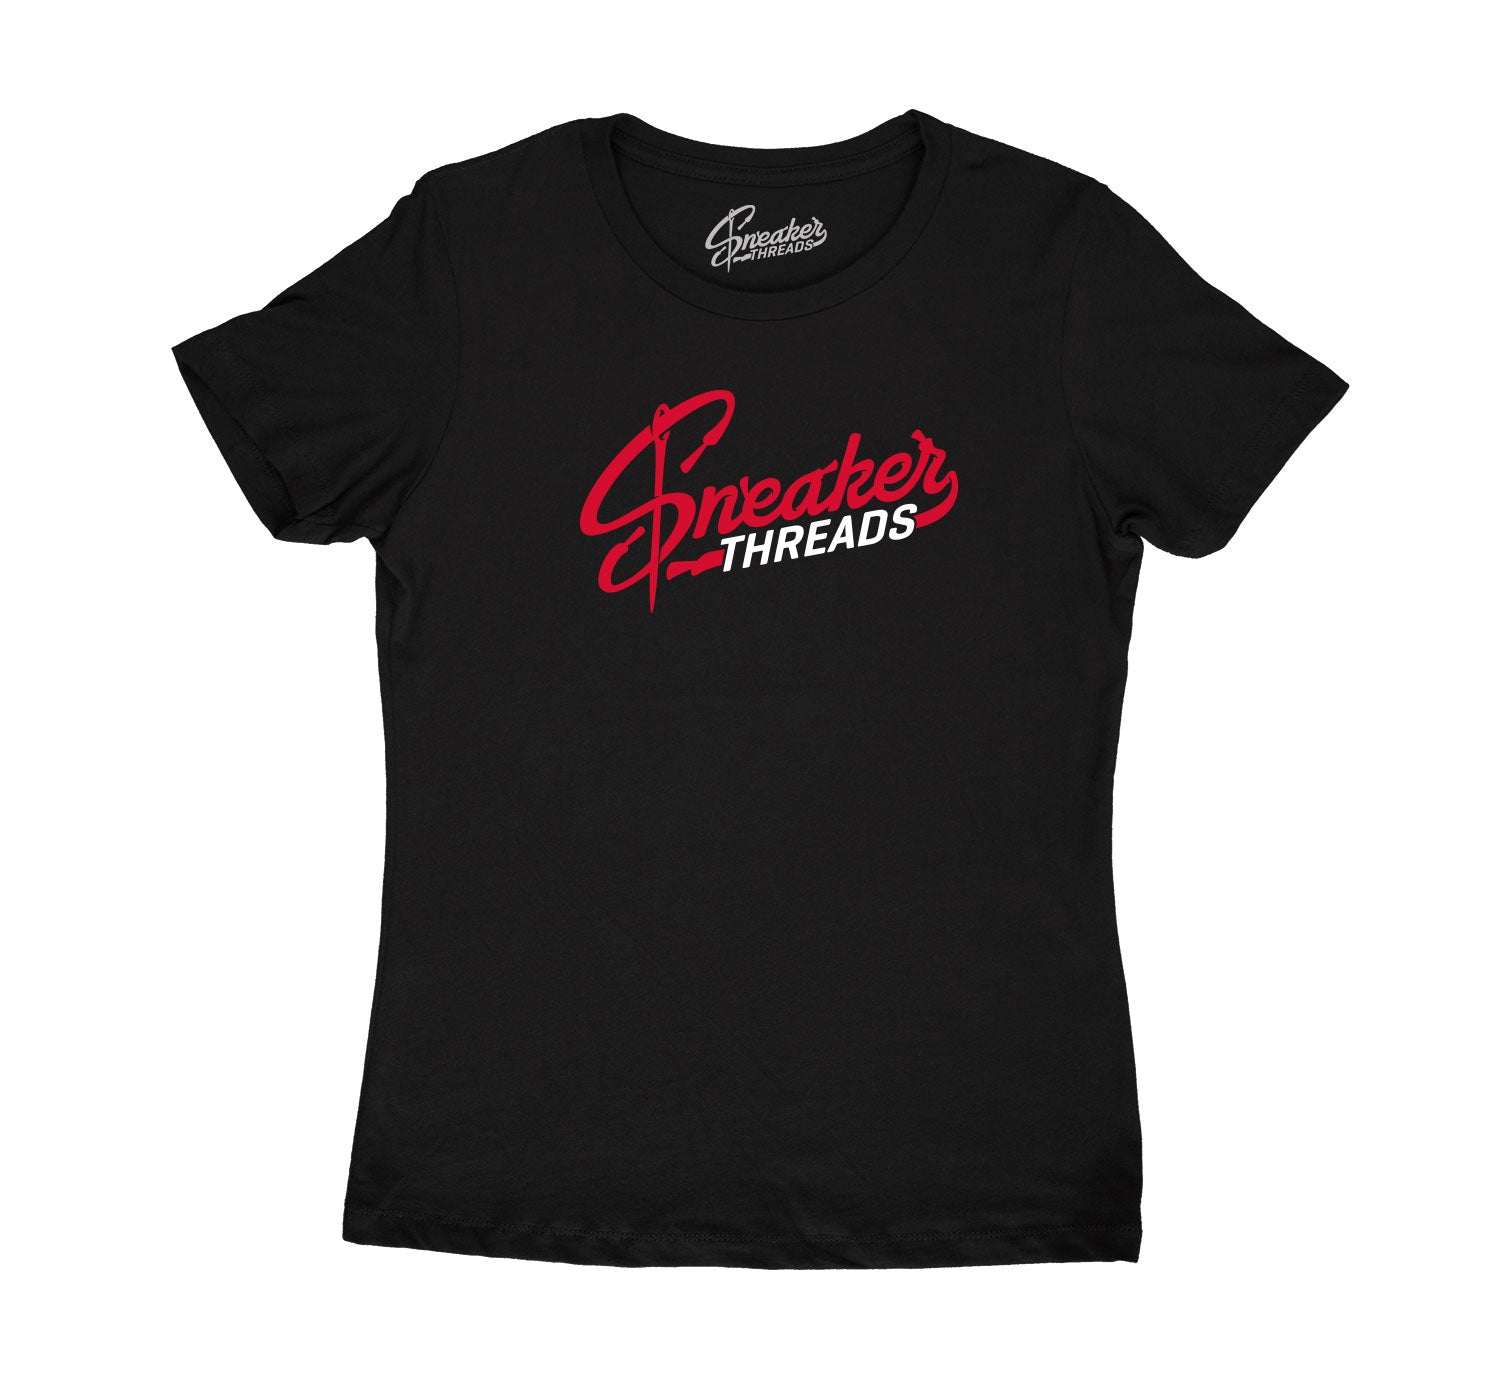 ladies t shirt collection made to match the gym red 9s